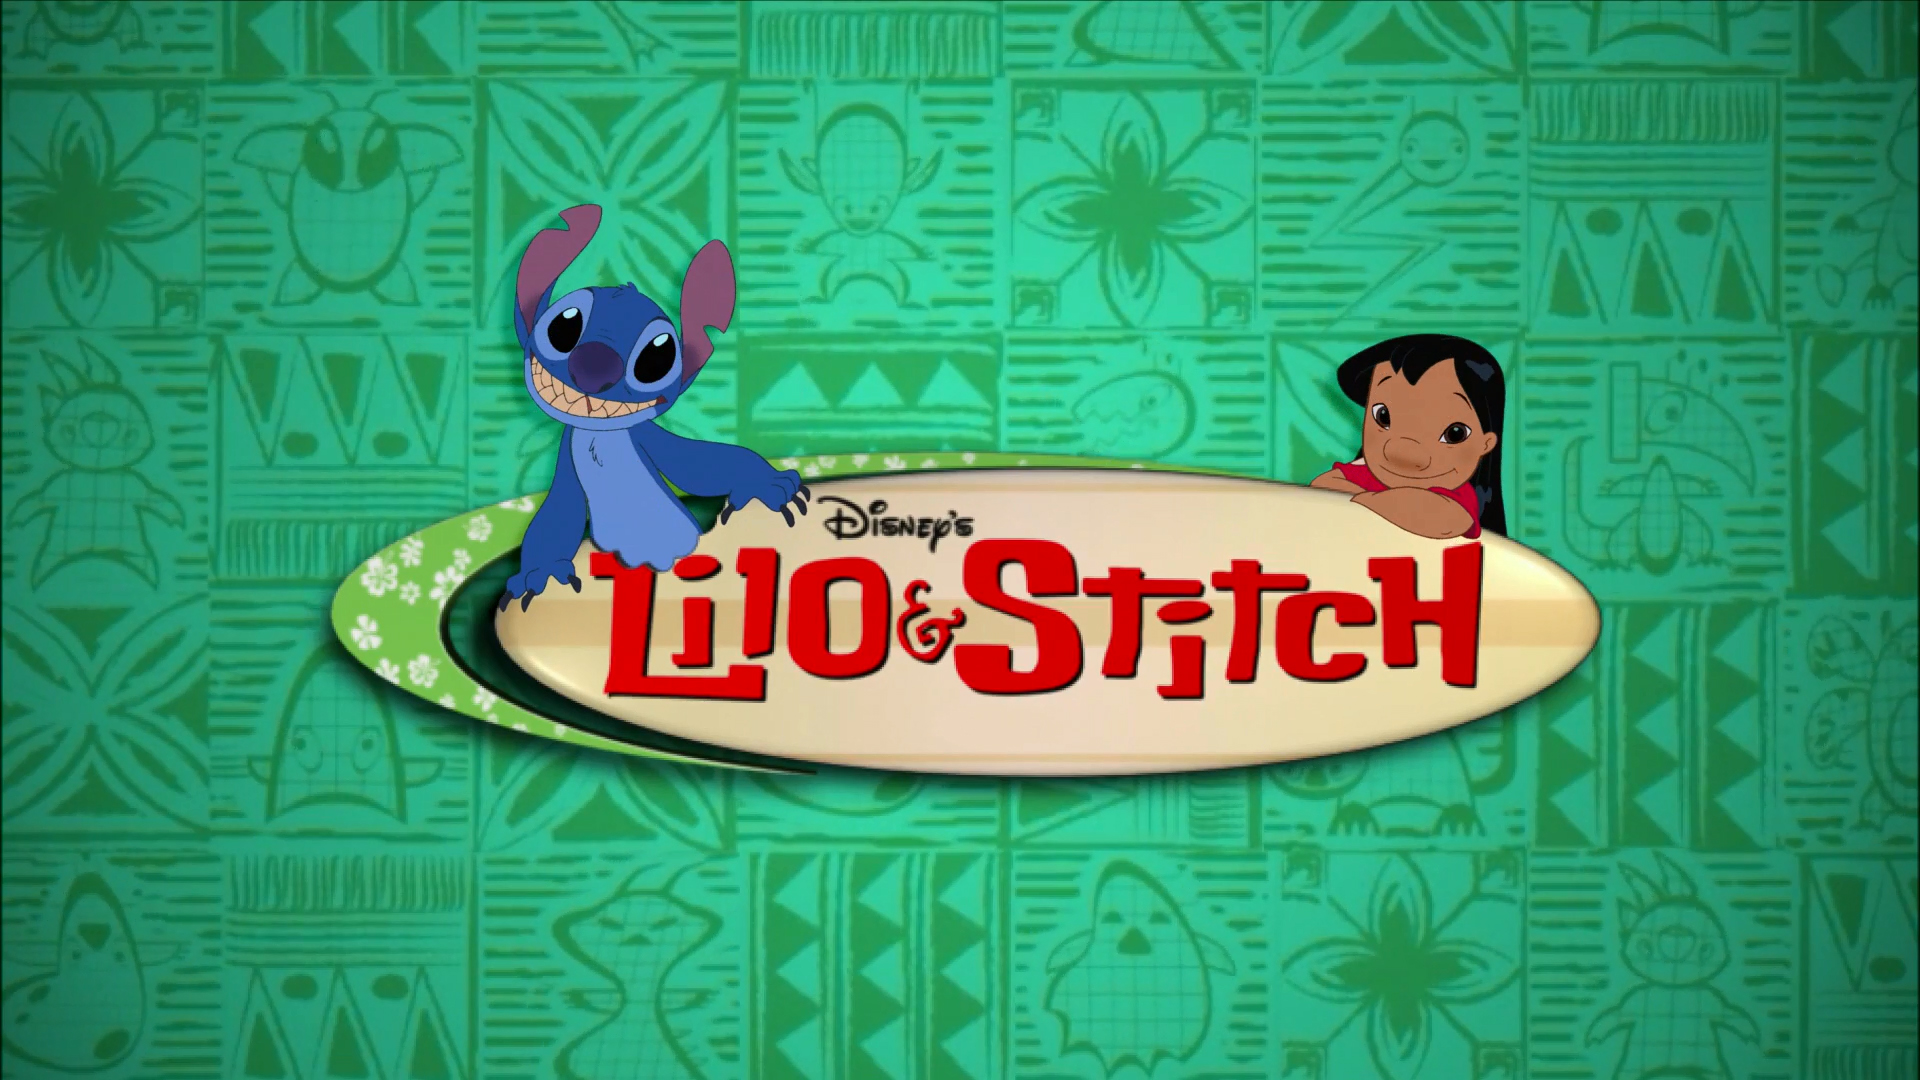 Lilo and stitch beginning song lyrics